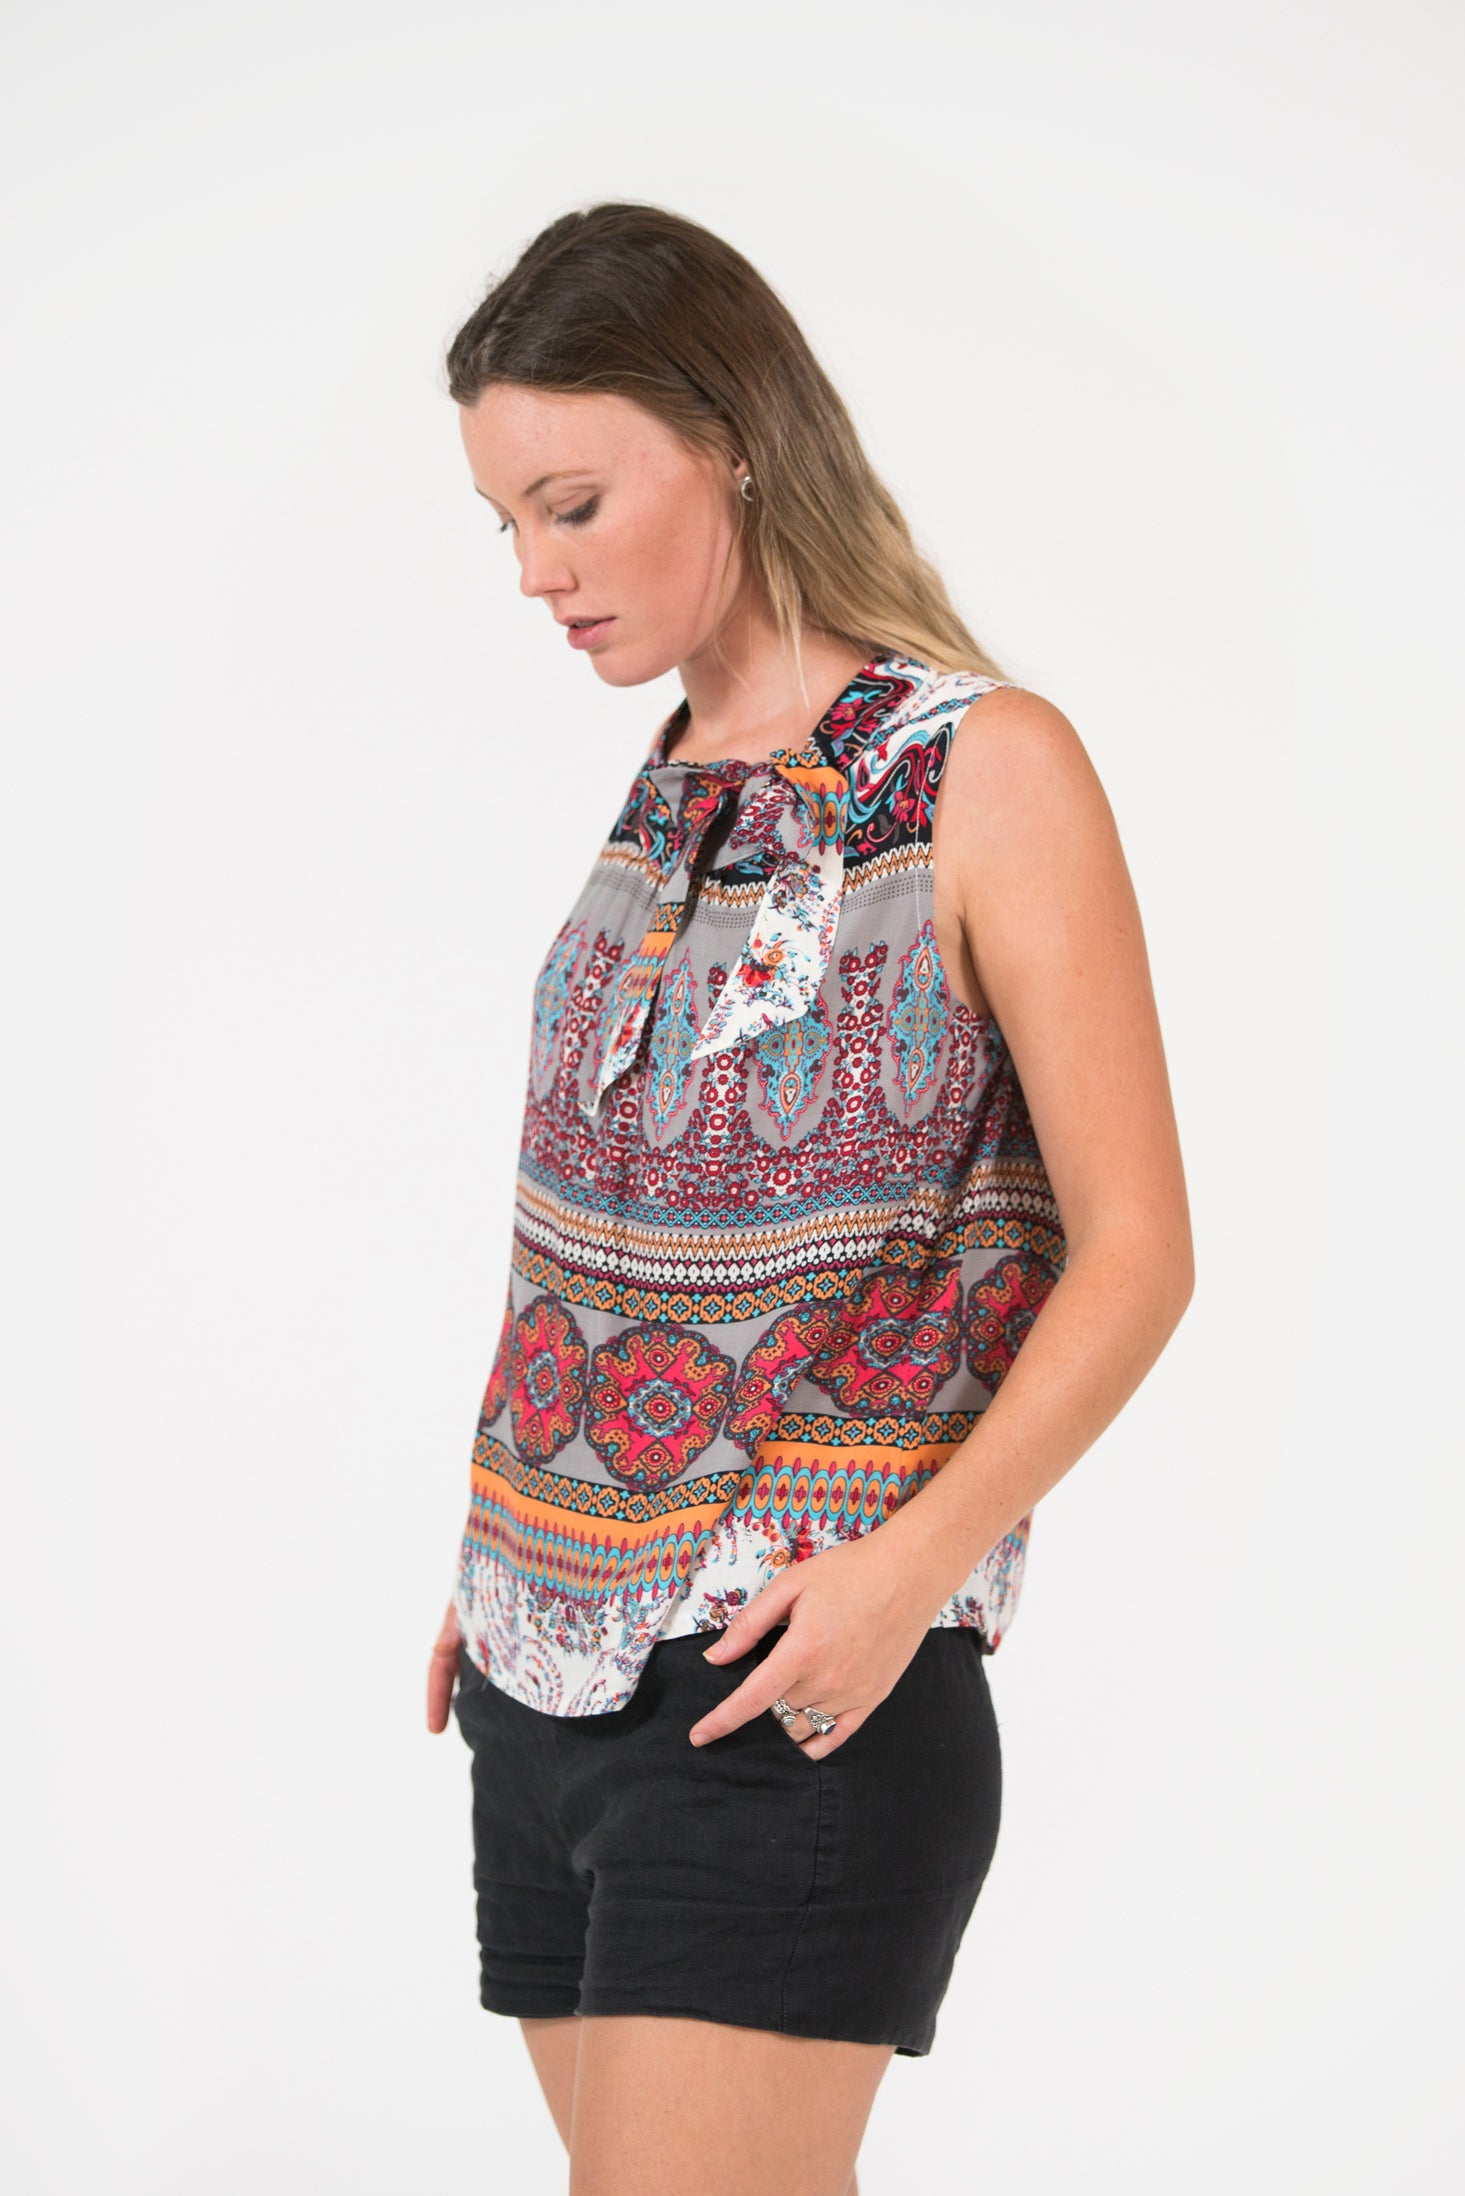 Pink/Grey printed Bowline top with tie at neck